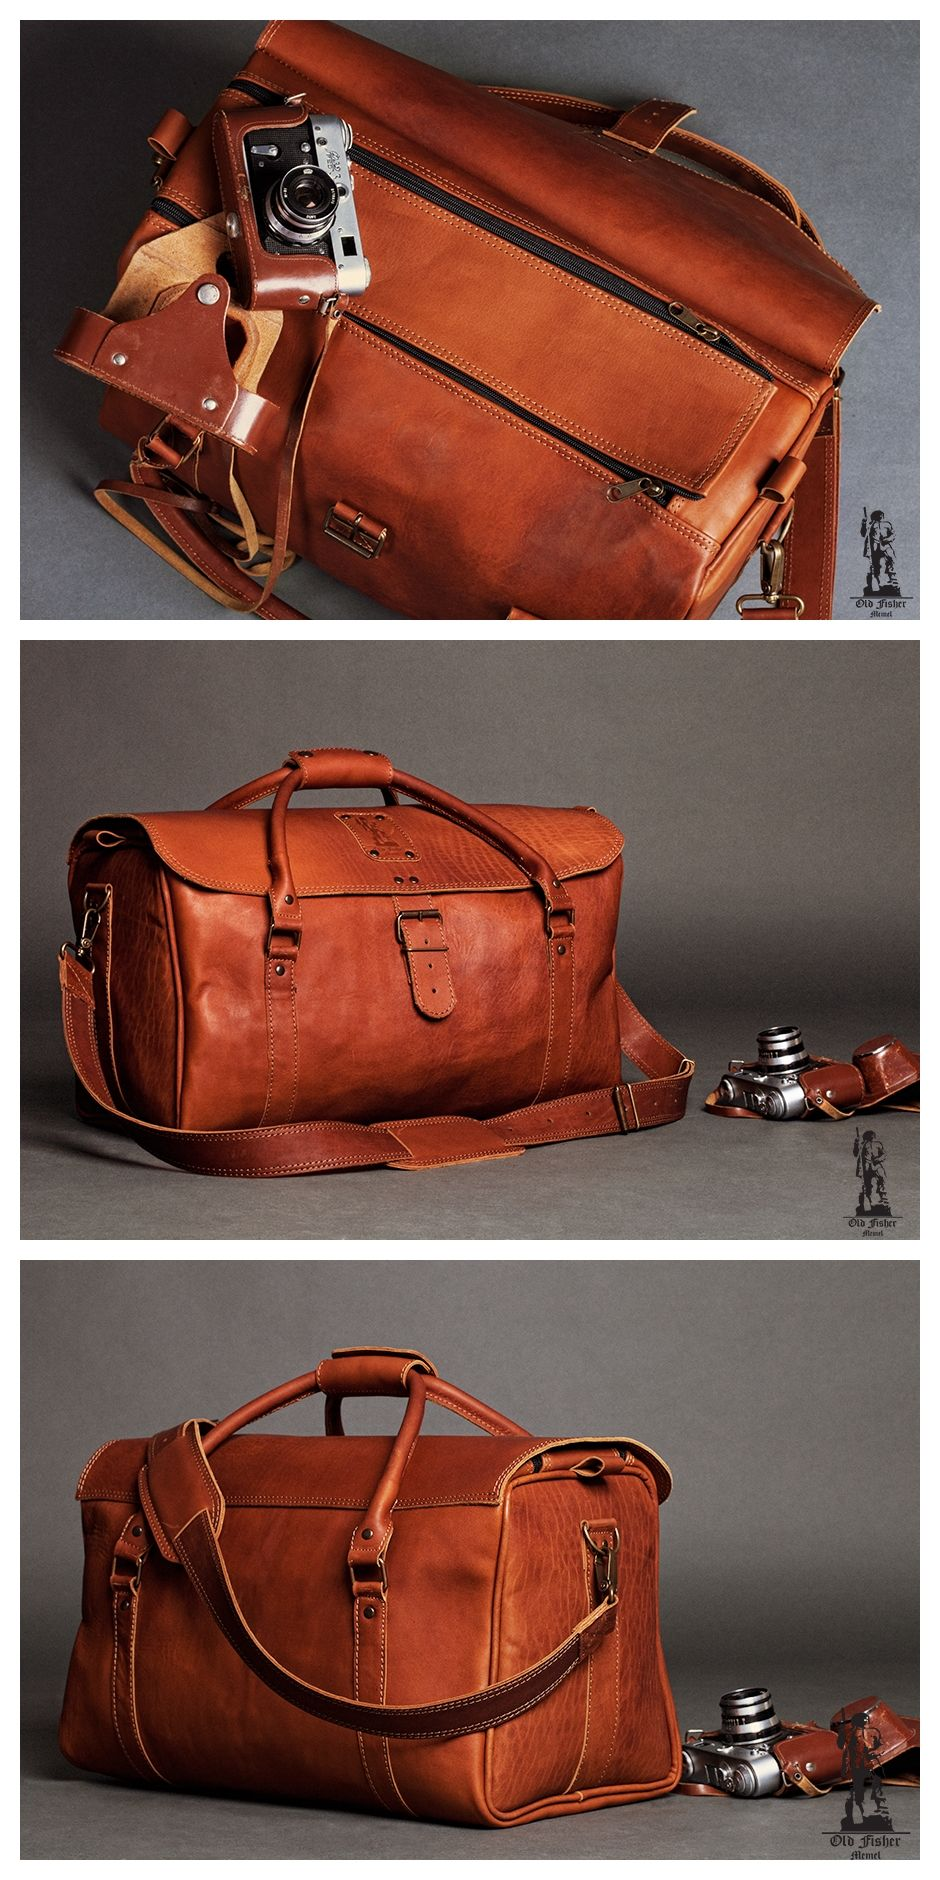 52f274cdee3e Leather Bag, Vintage Leather Bag, Leather Travel Bag, Leather Duffle ...